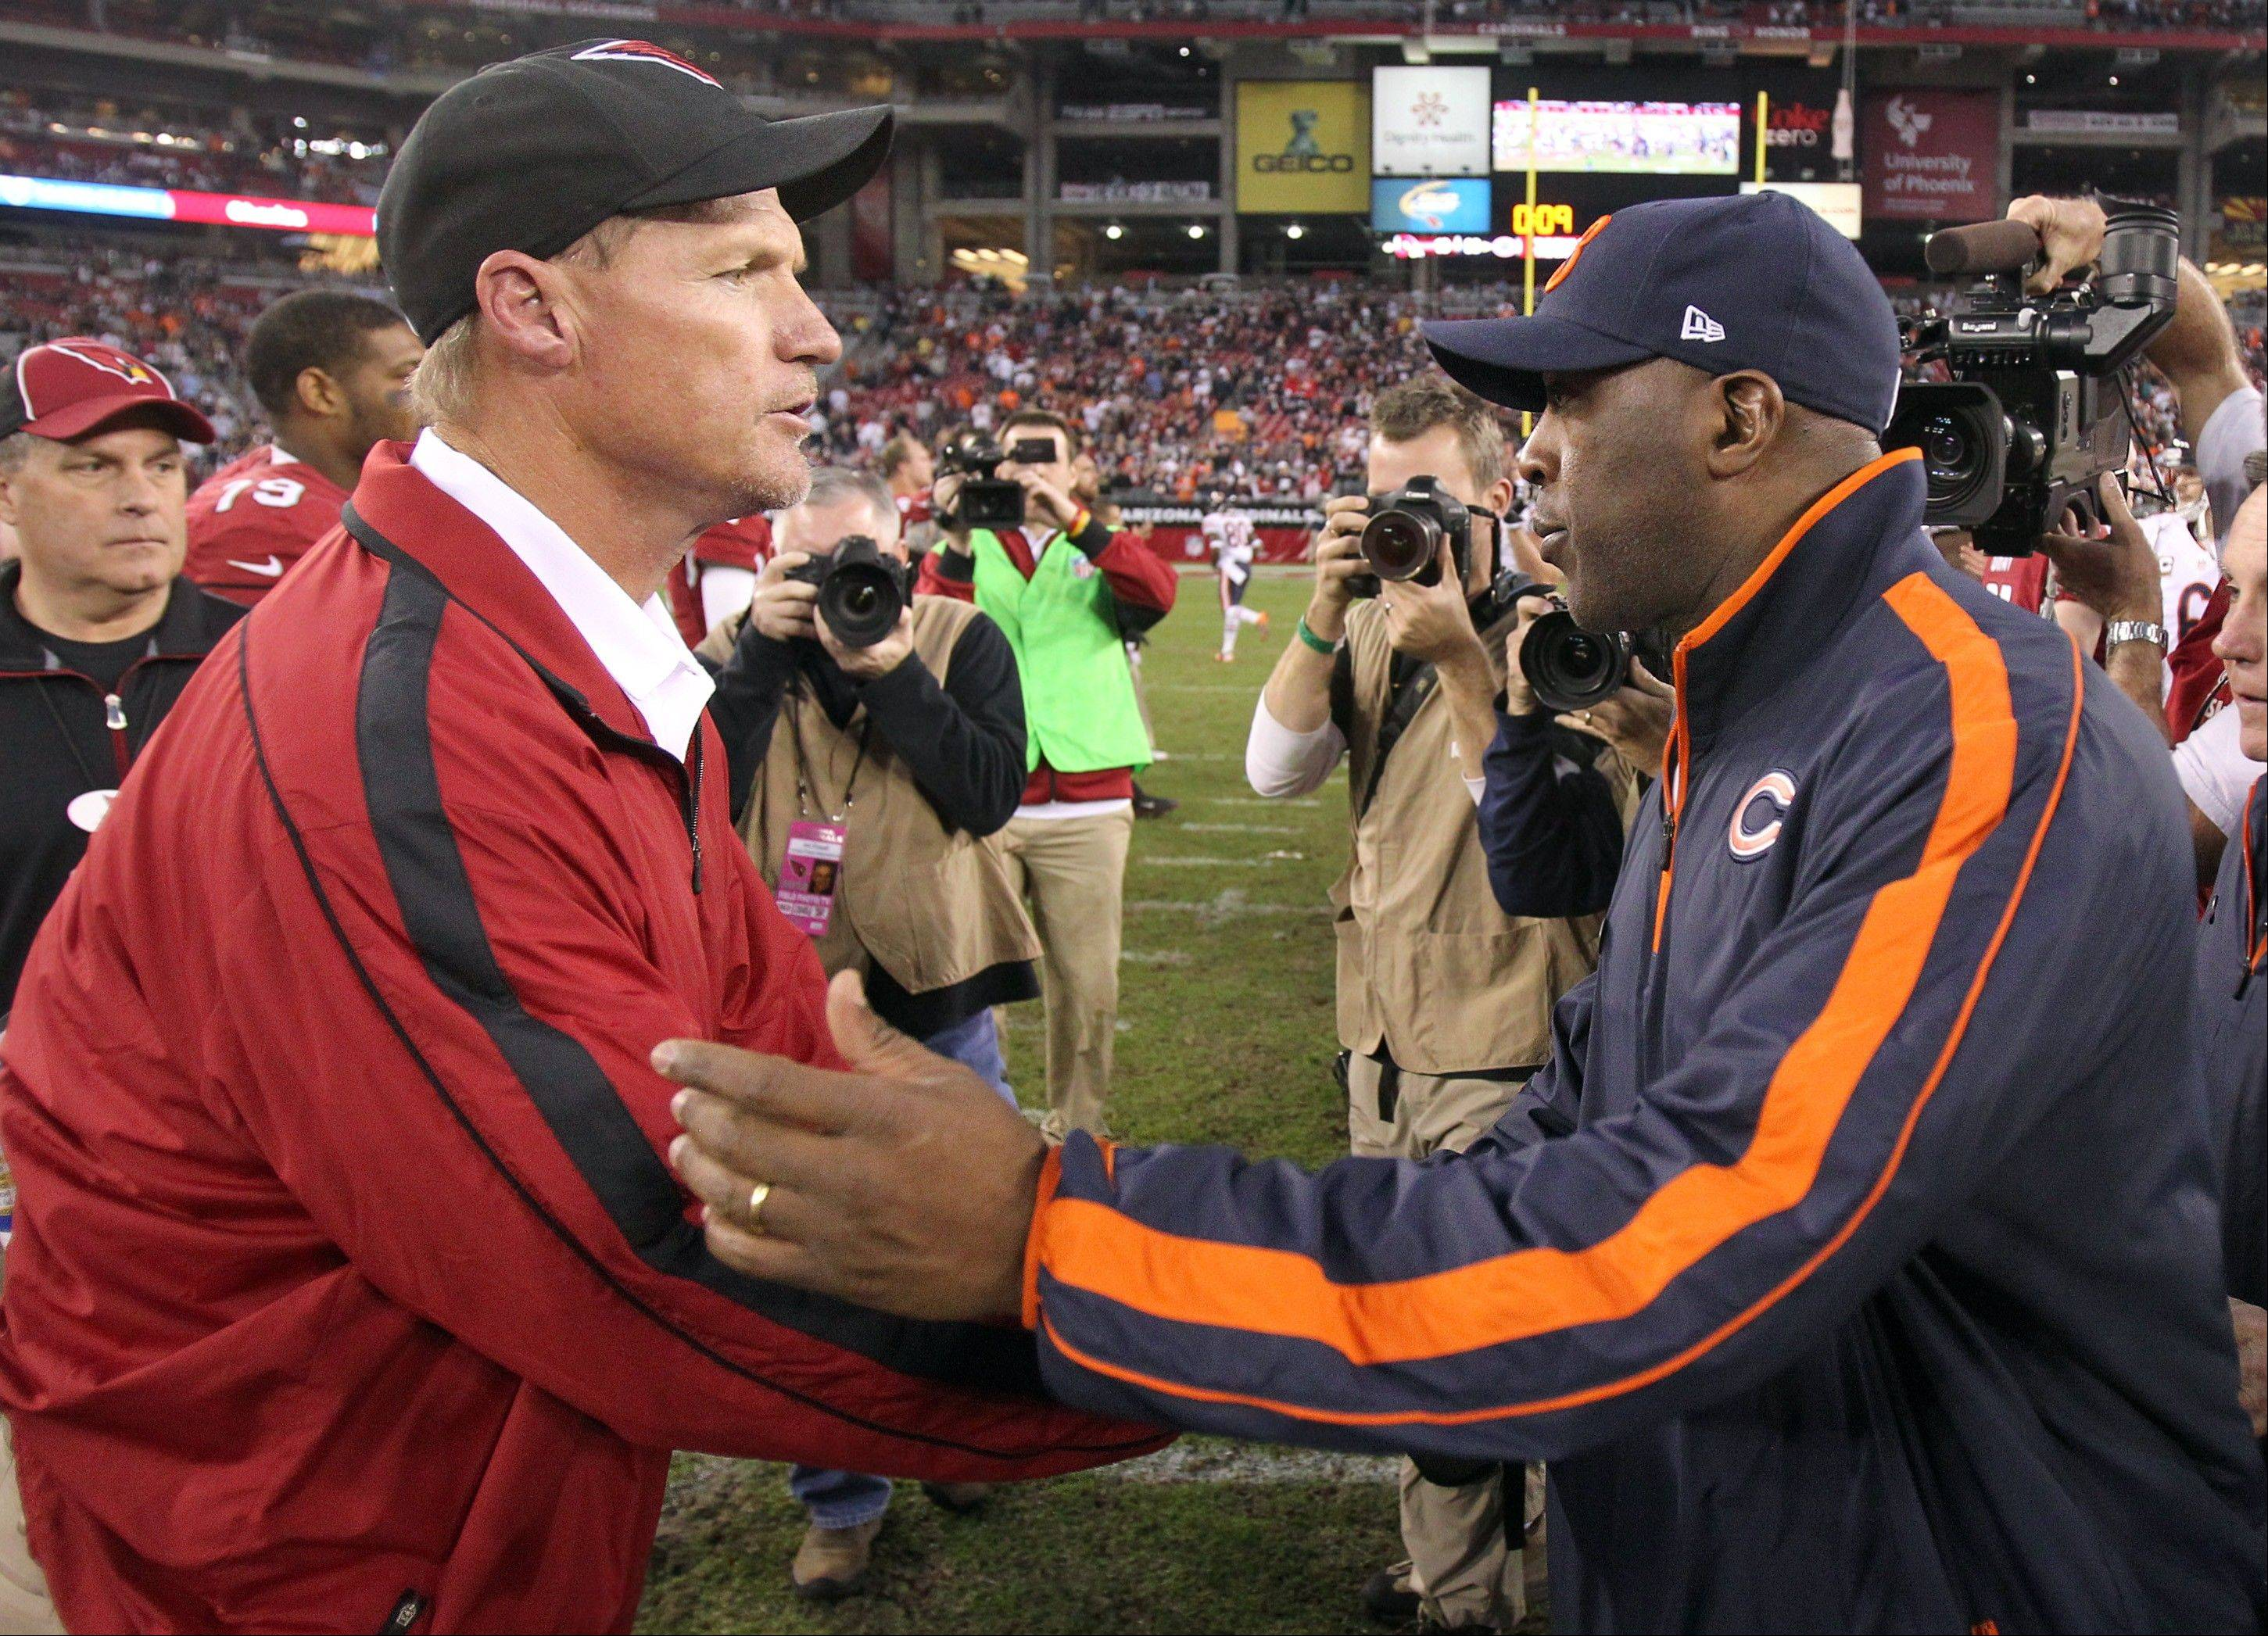 Bears coach Lovie Smith, right, was more than happy to receive the gifts provided by coach Ken Whisenhunt's Cardinals team Sunday in Arizona.